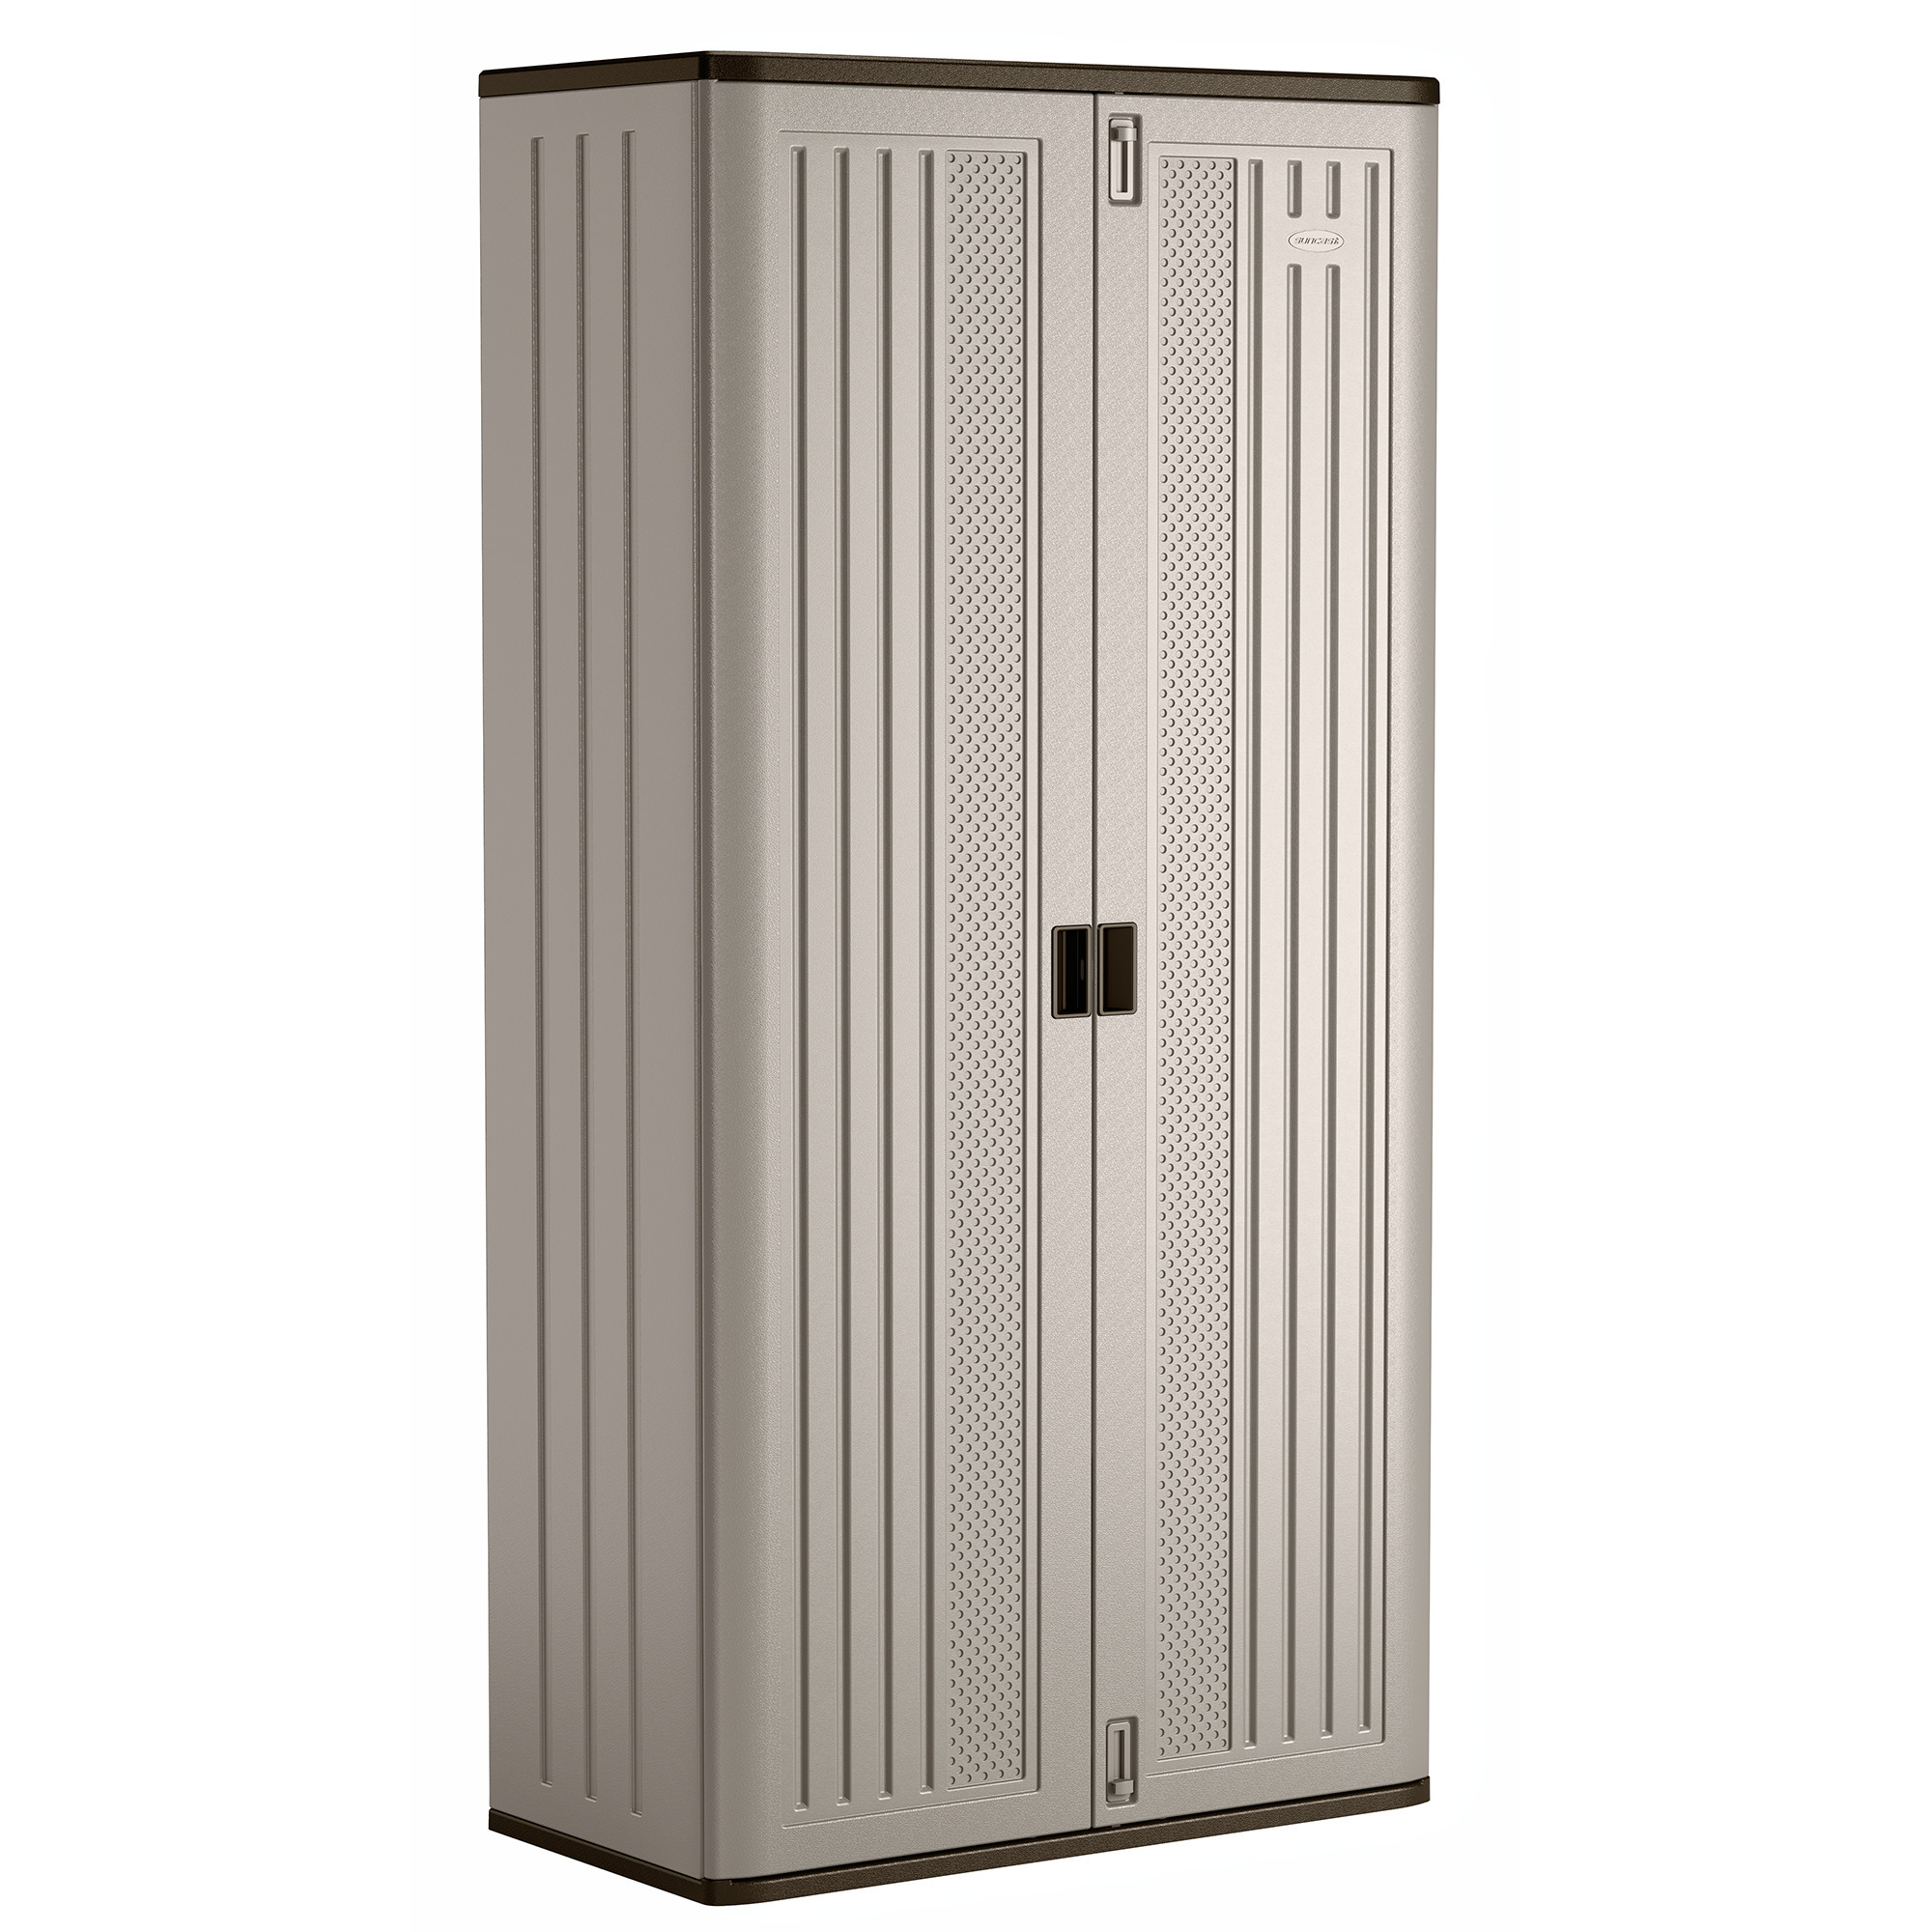 Suncast Mega Tall Storage Cabinet, Resin, BMC8000